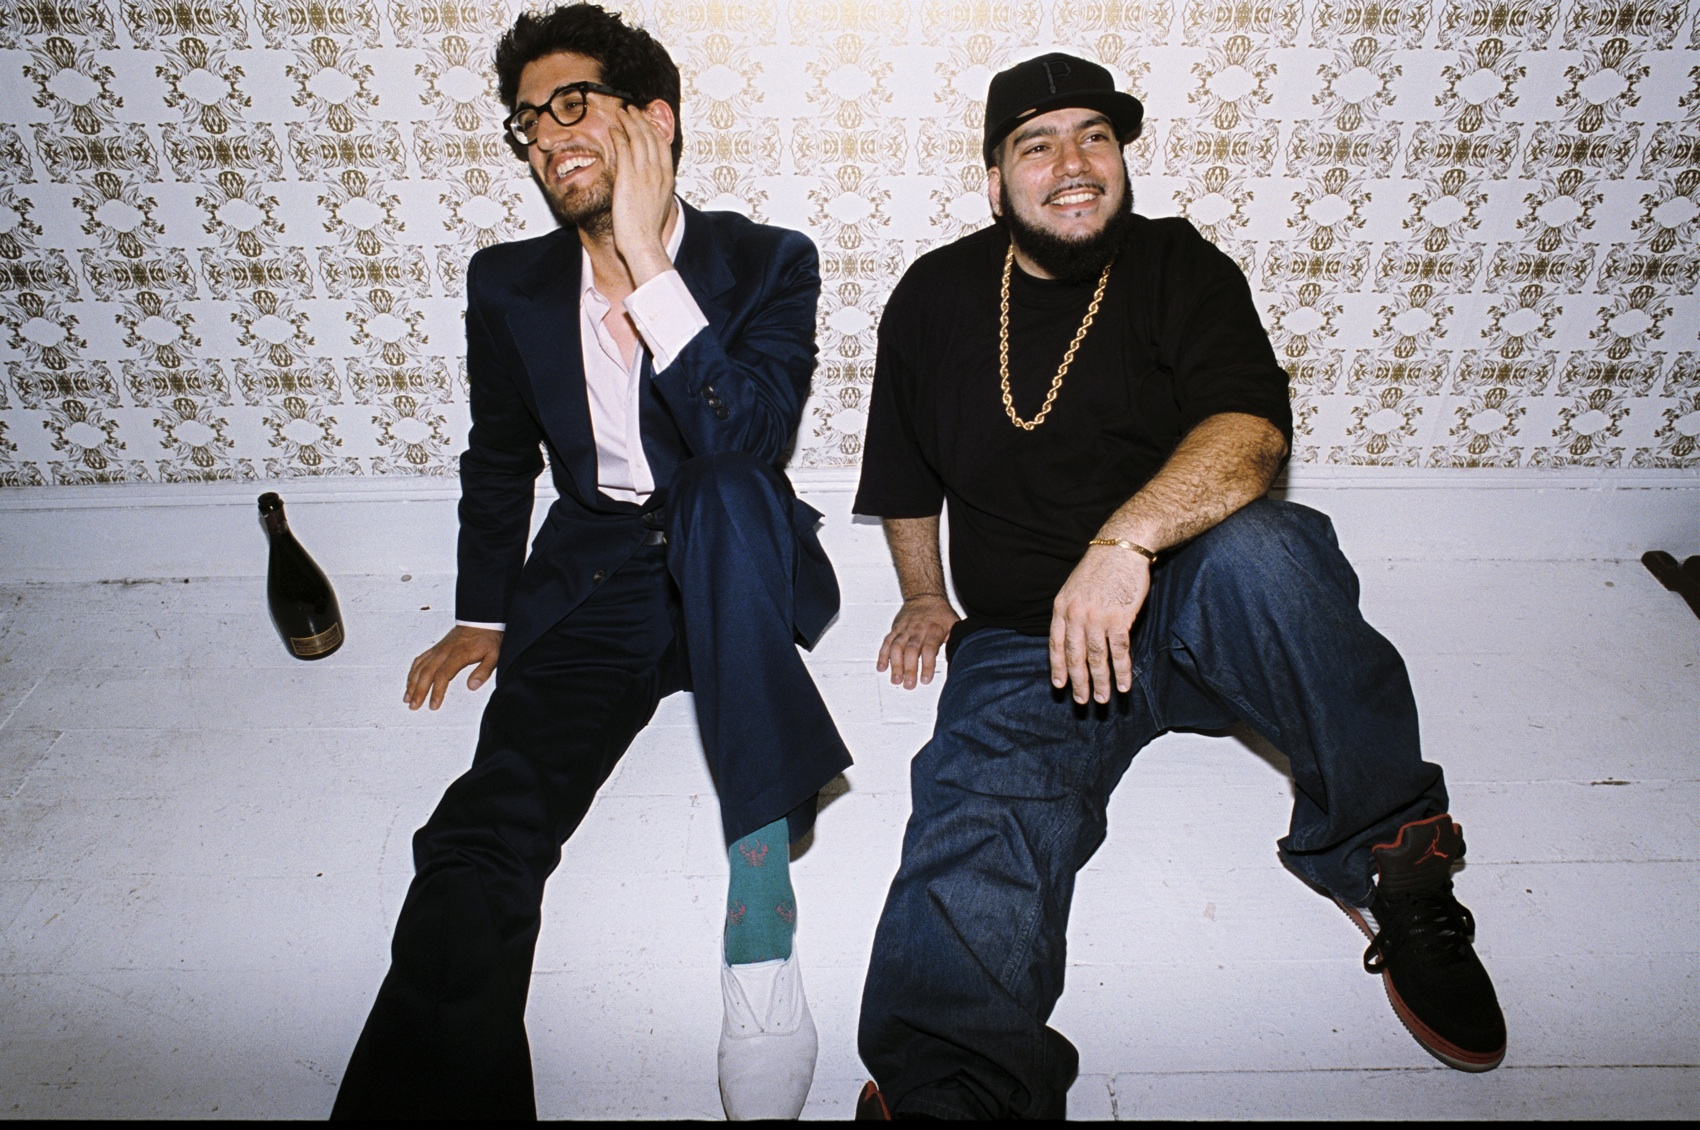 Chromeo (DJ Set) @ Exchange LA 1/18